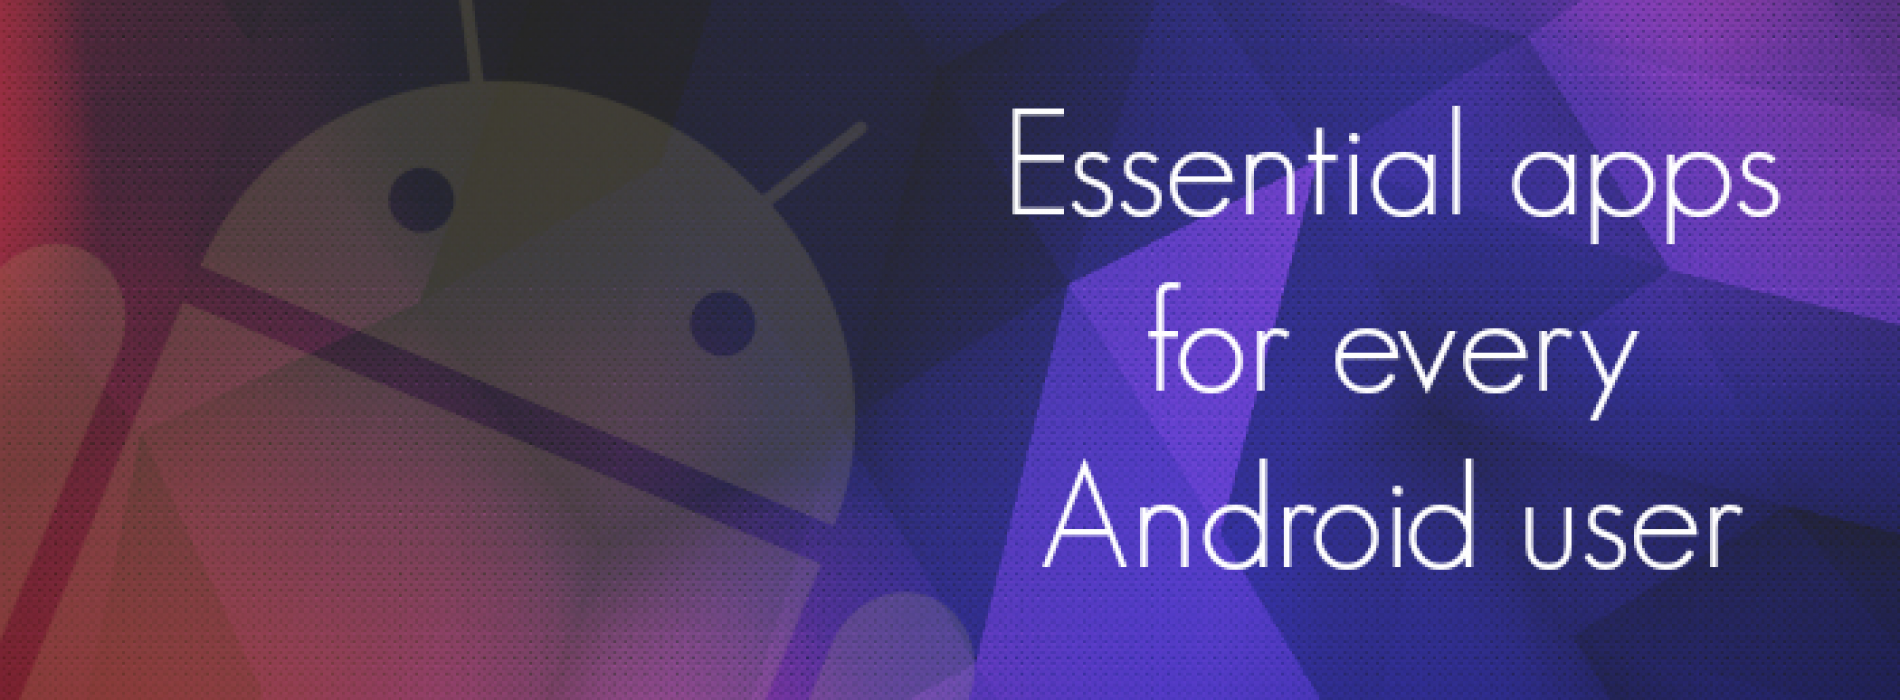 Essential apps for every Android user